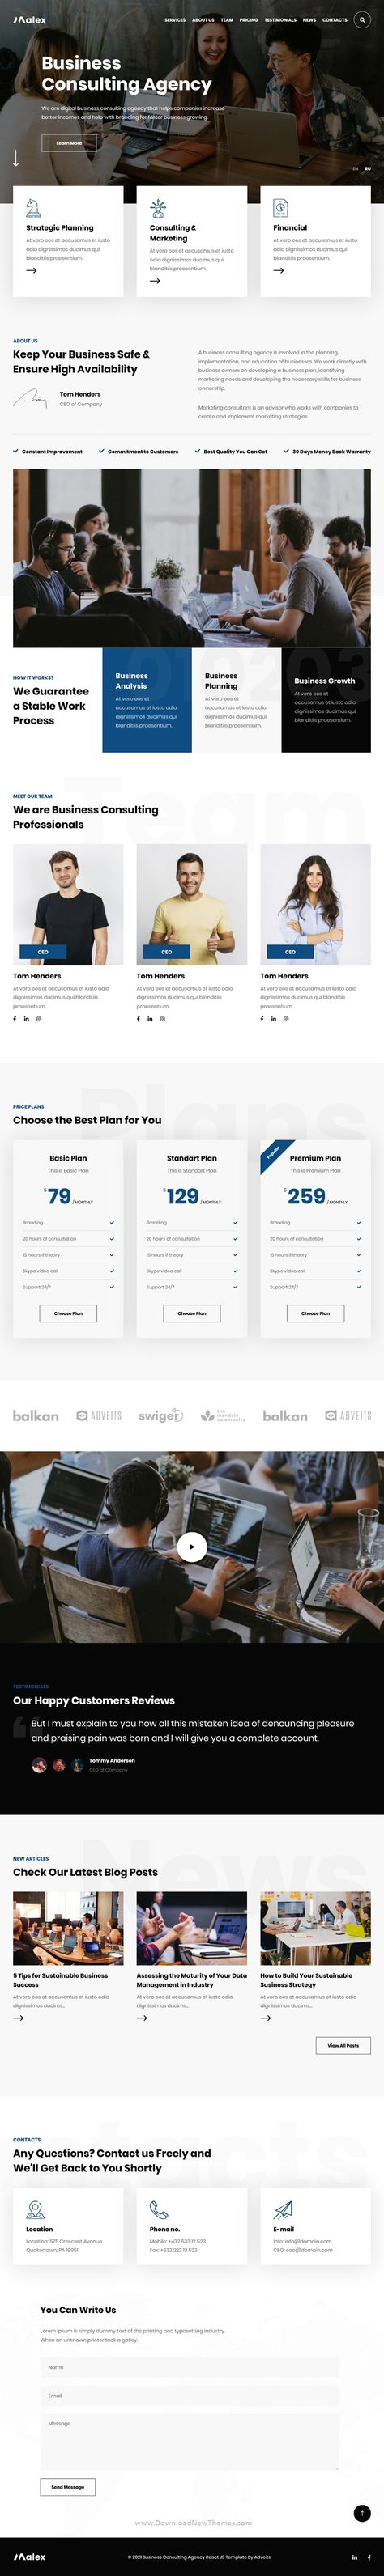 Malex Business Consulting Agency React JS Template